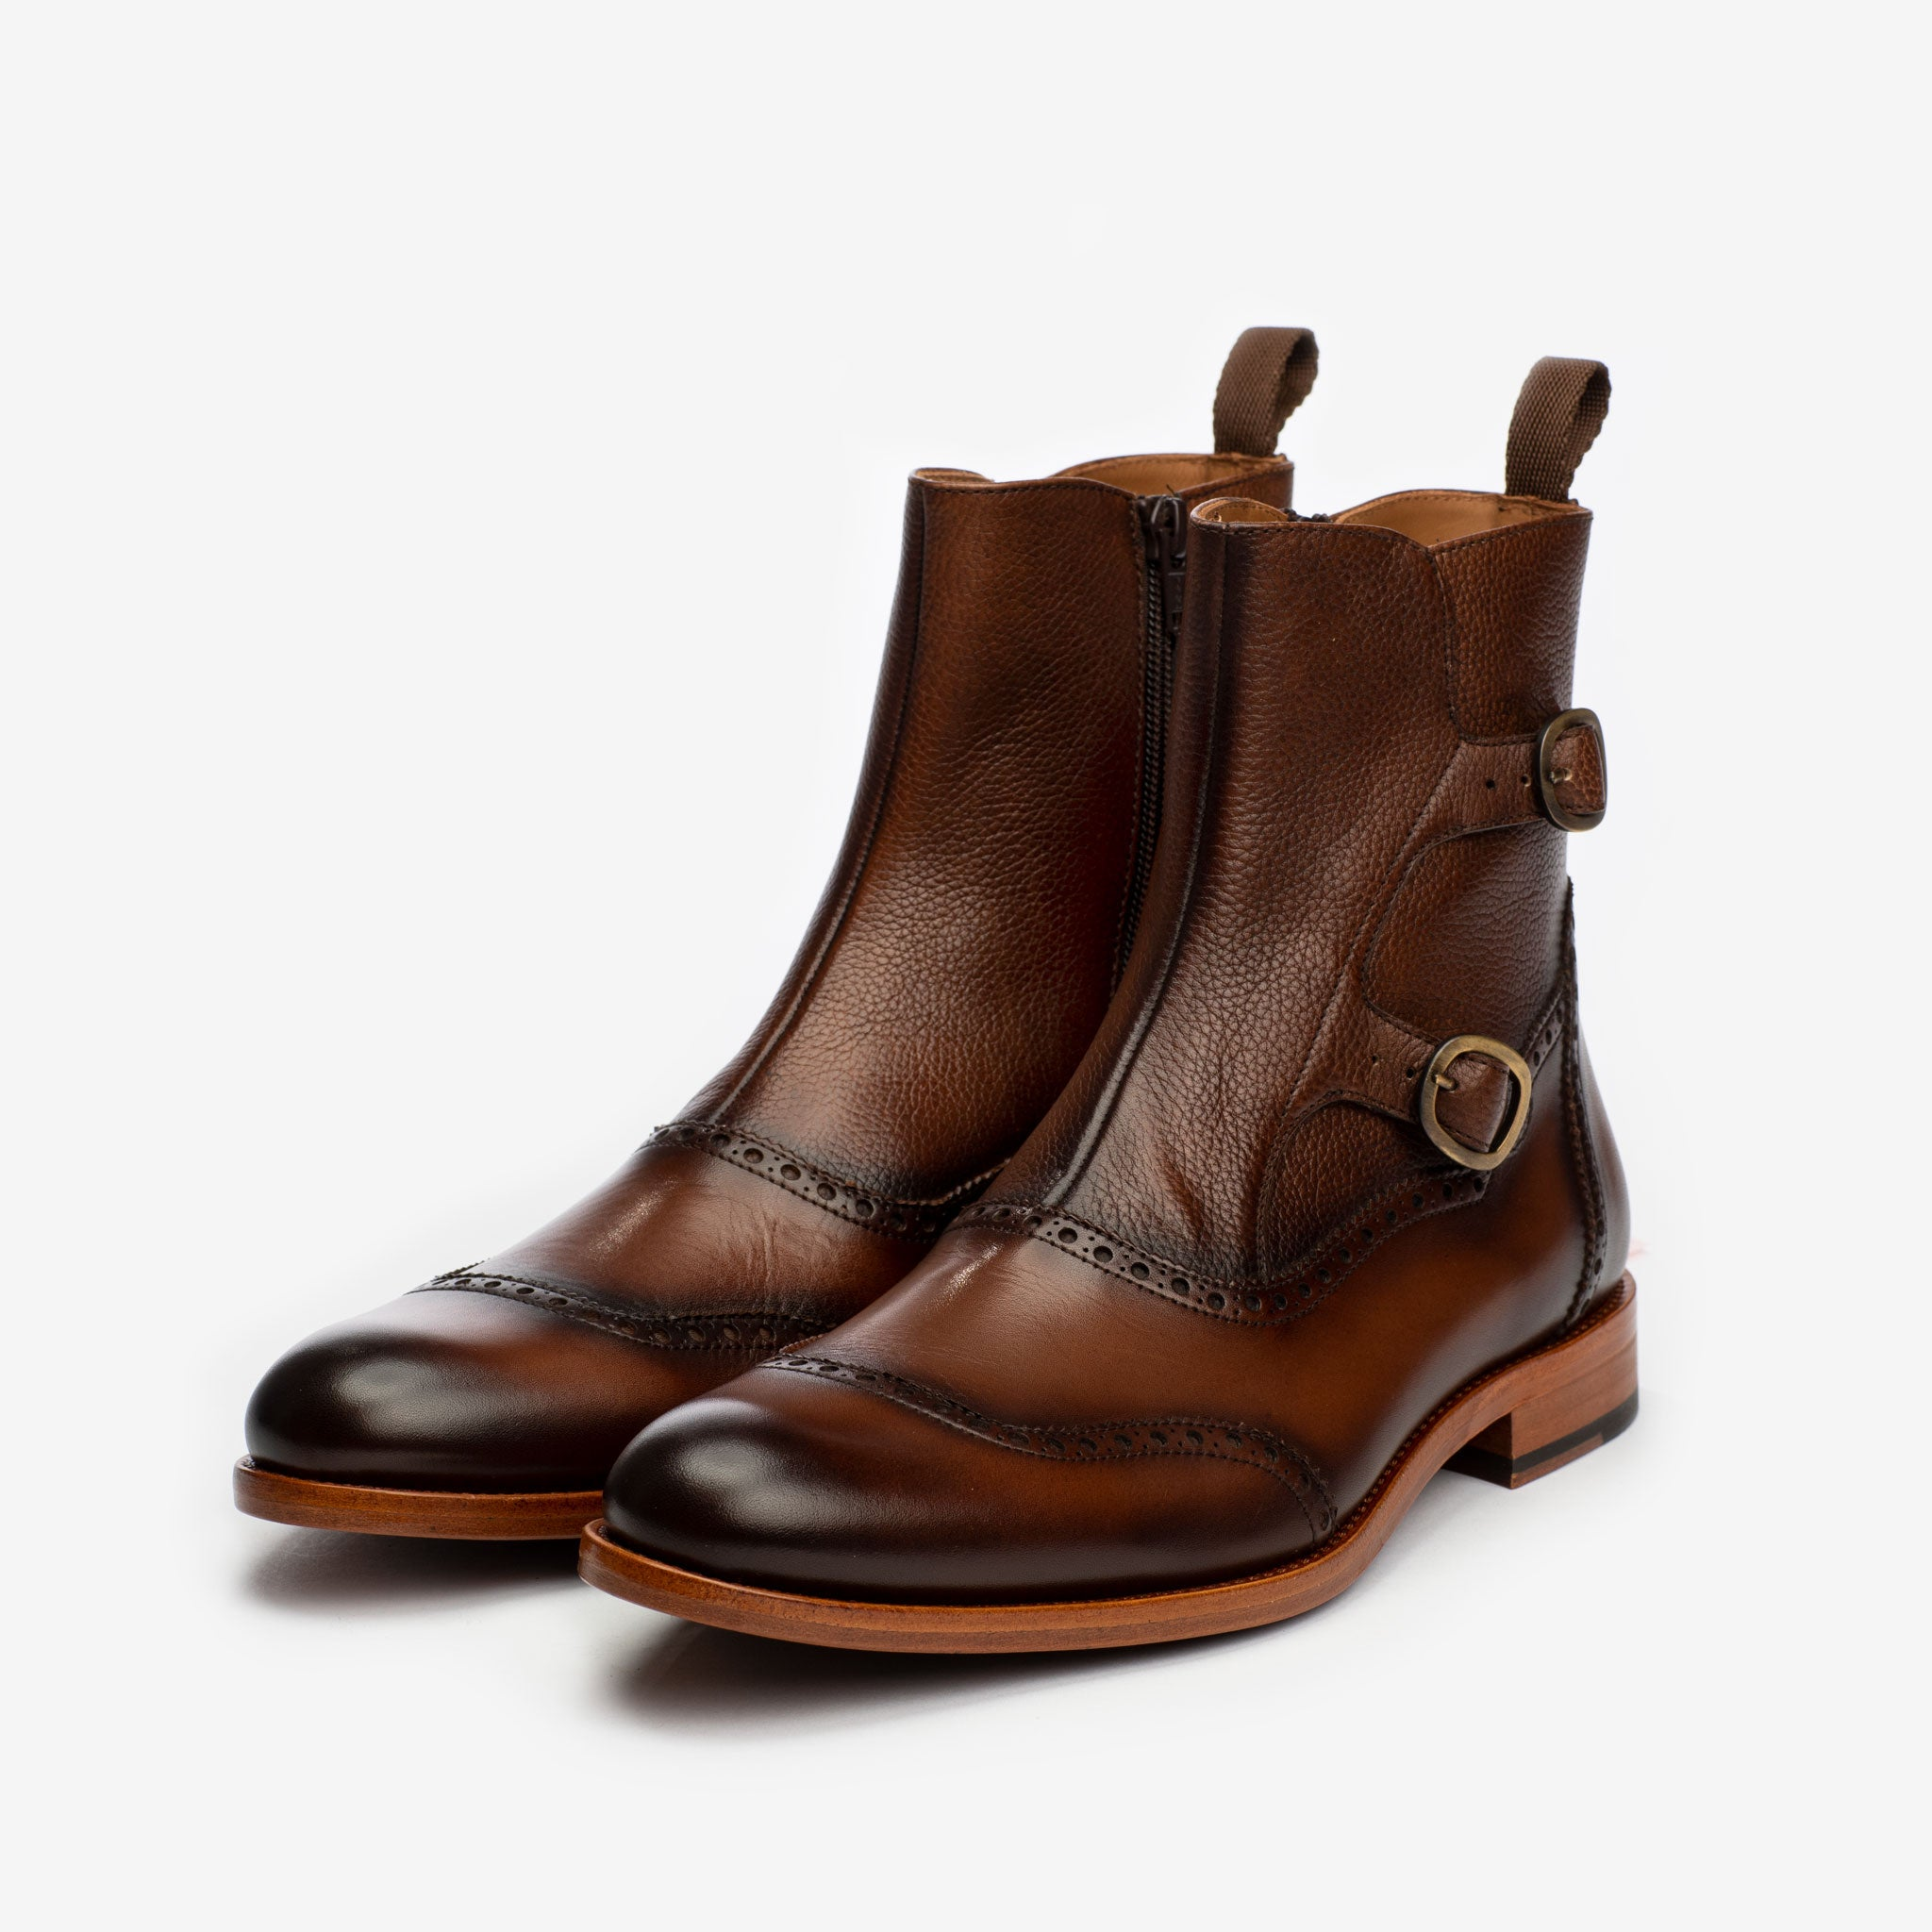 The Dustin Boot in Chocolate